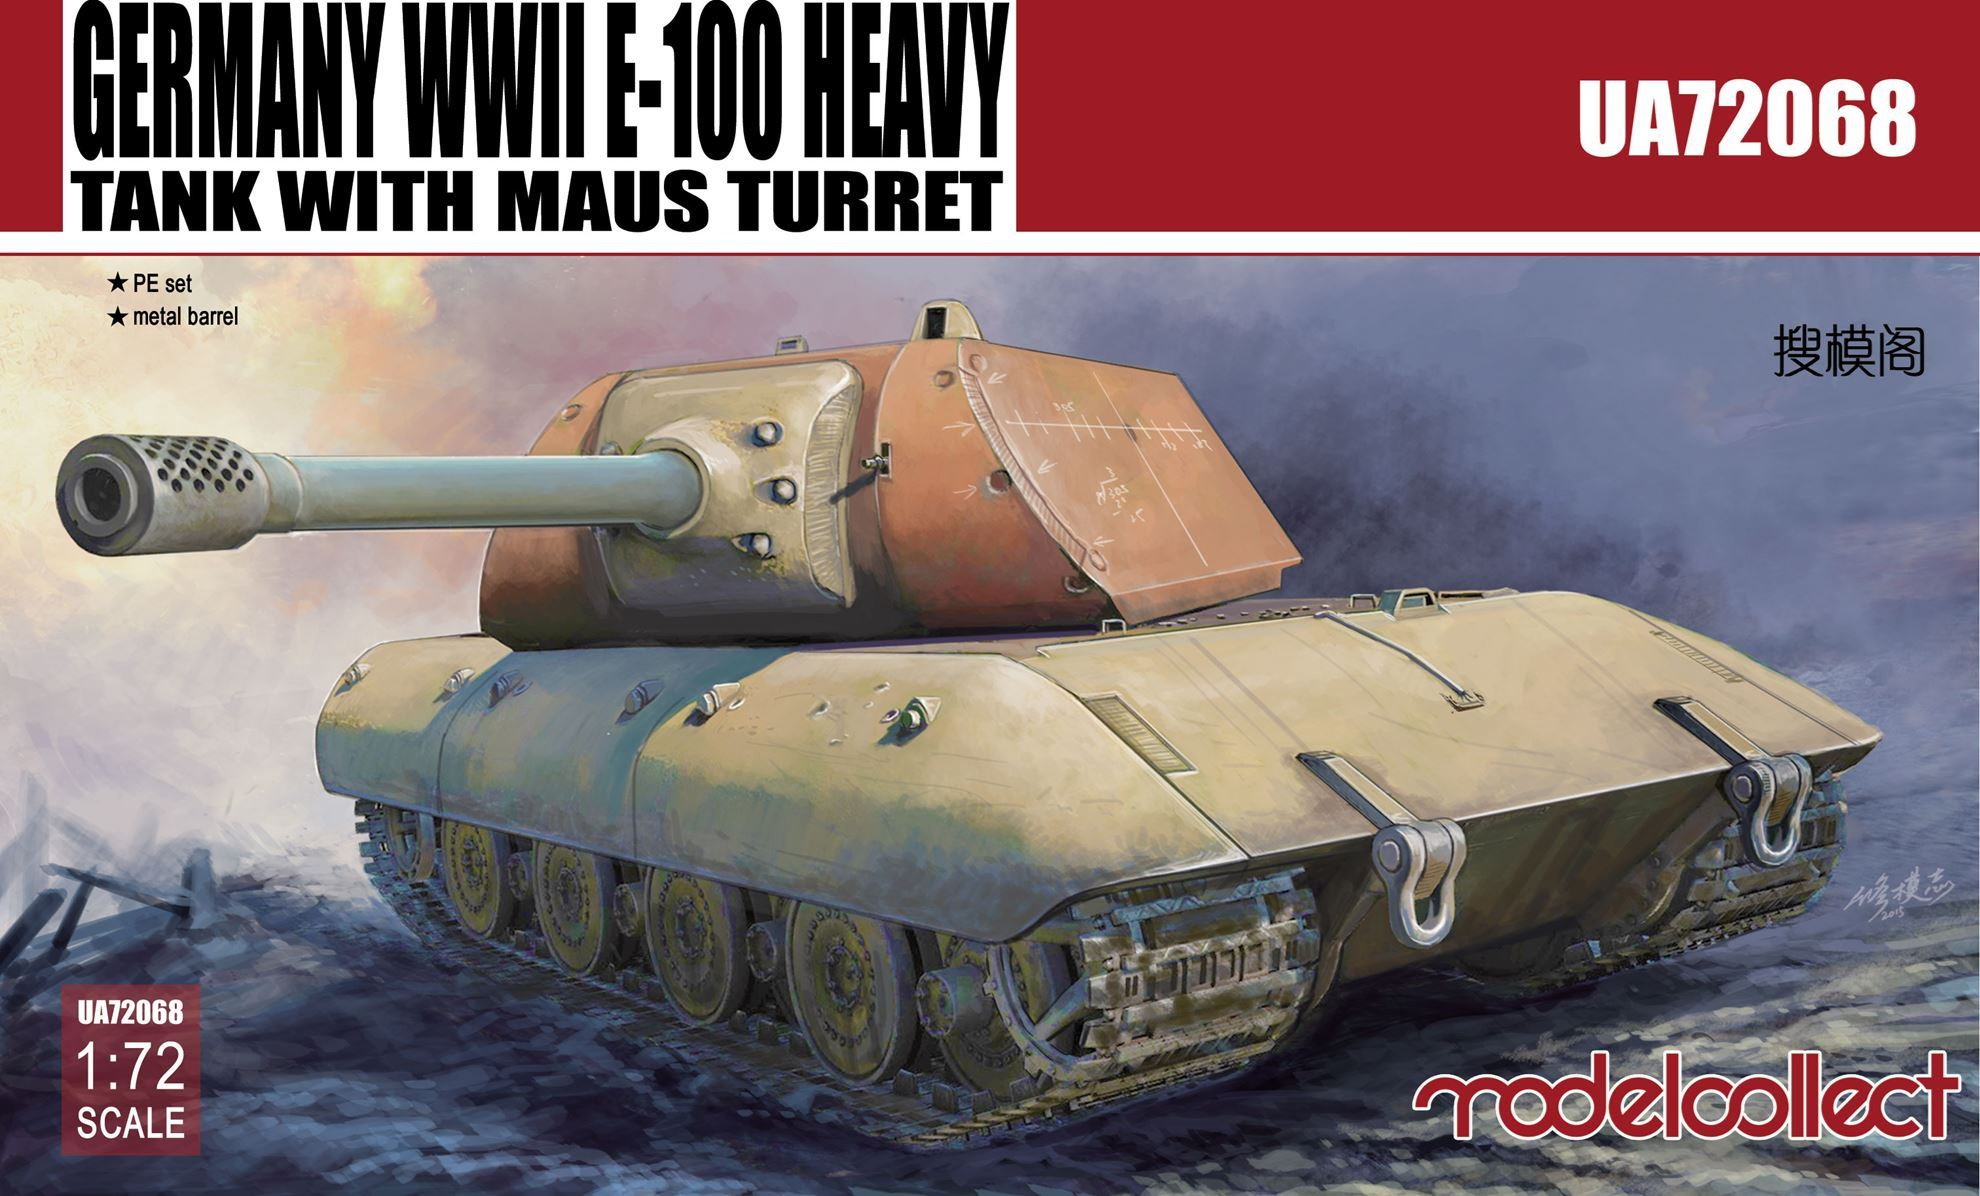 Modelcollect 1/72 Germany WWII E-100 Heavy Tank with Maus turret